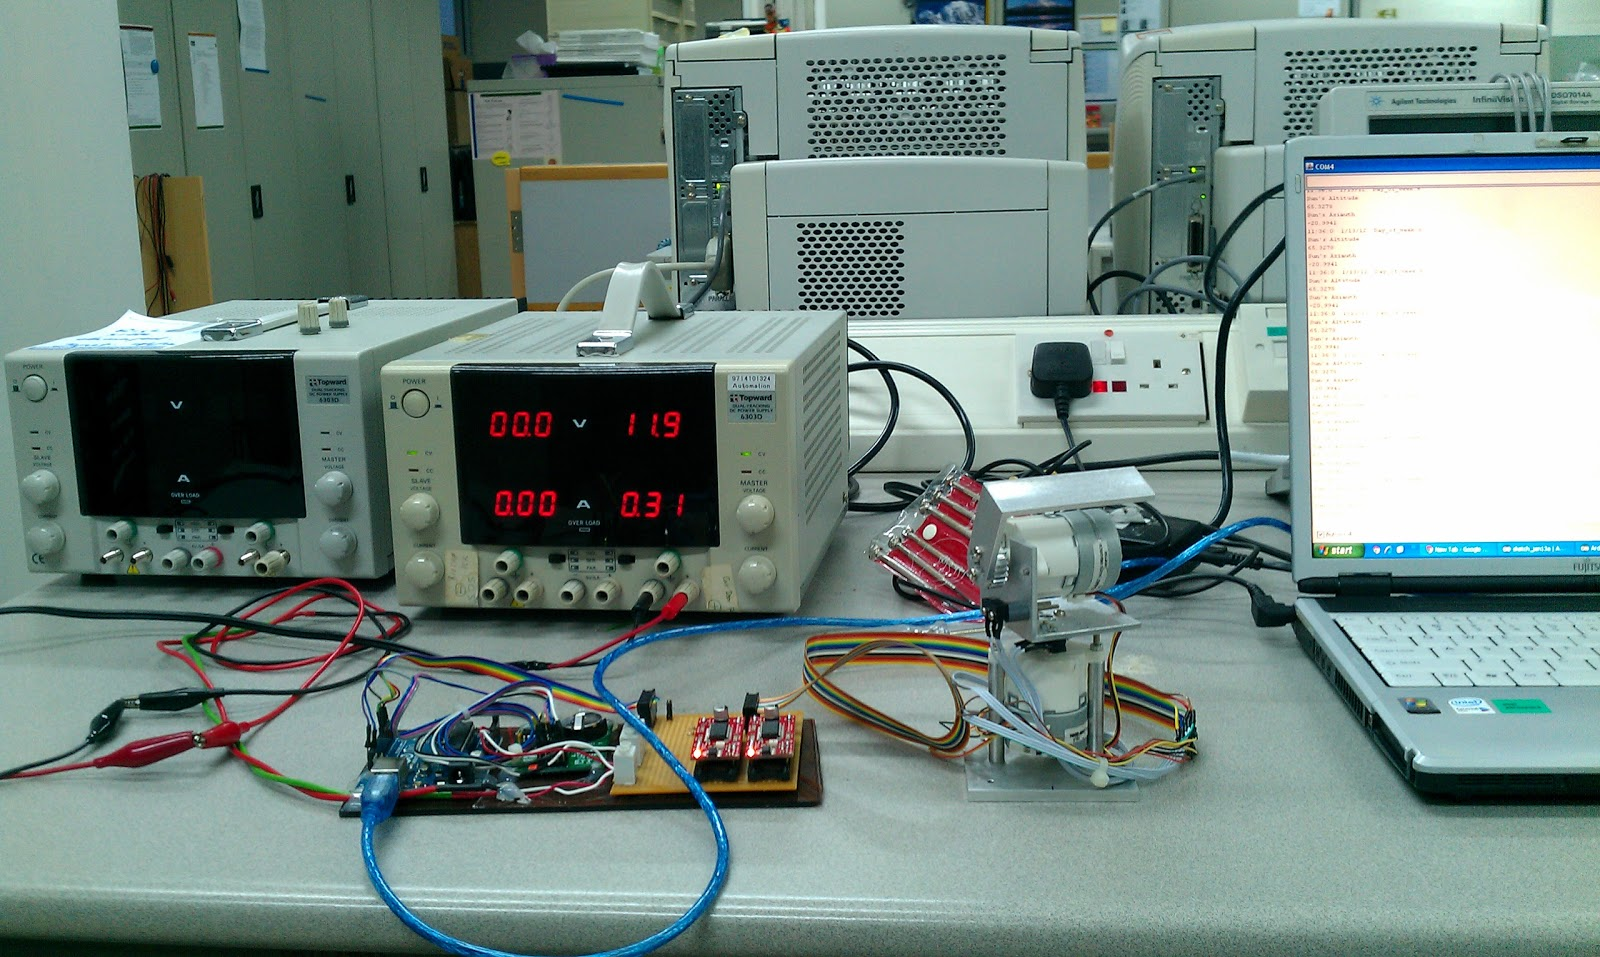 Wiring Diagram Together With 12v Power Supply Circuit Diagram On Ezgo